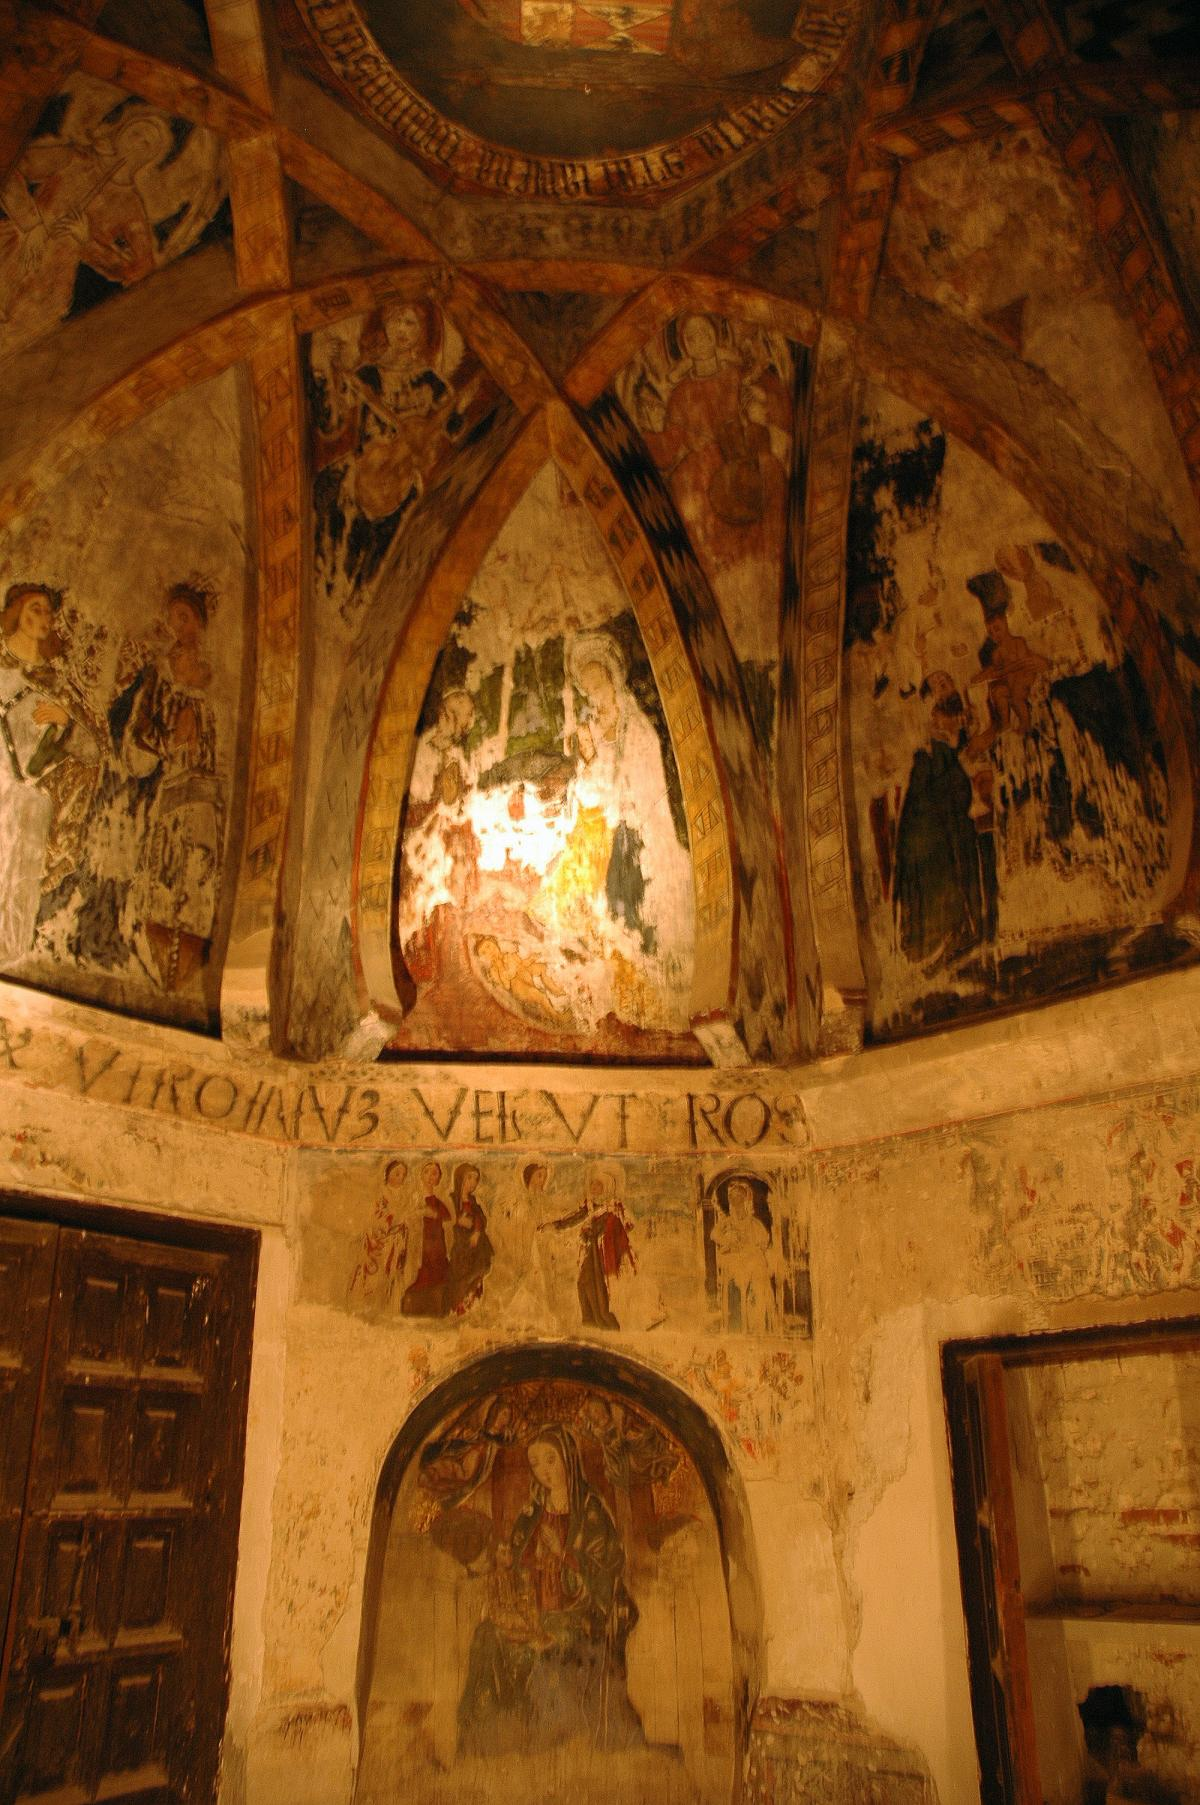 Paintings of saints adorn the vaulted ceiling, lit by torchlight